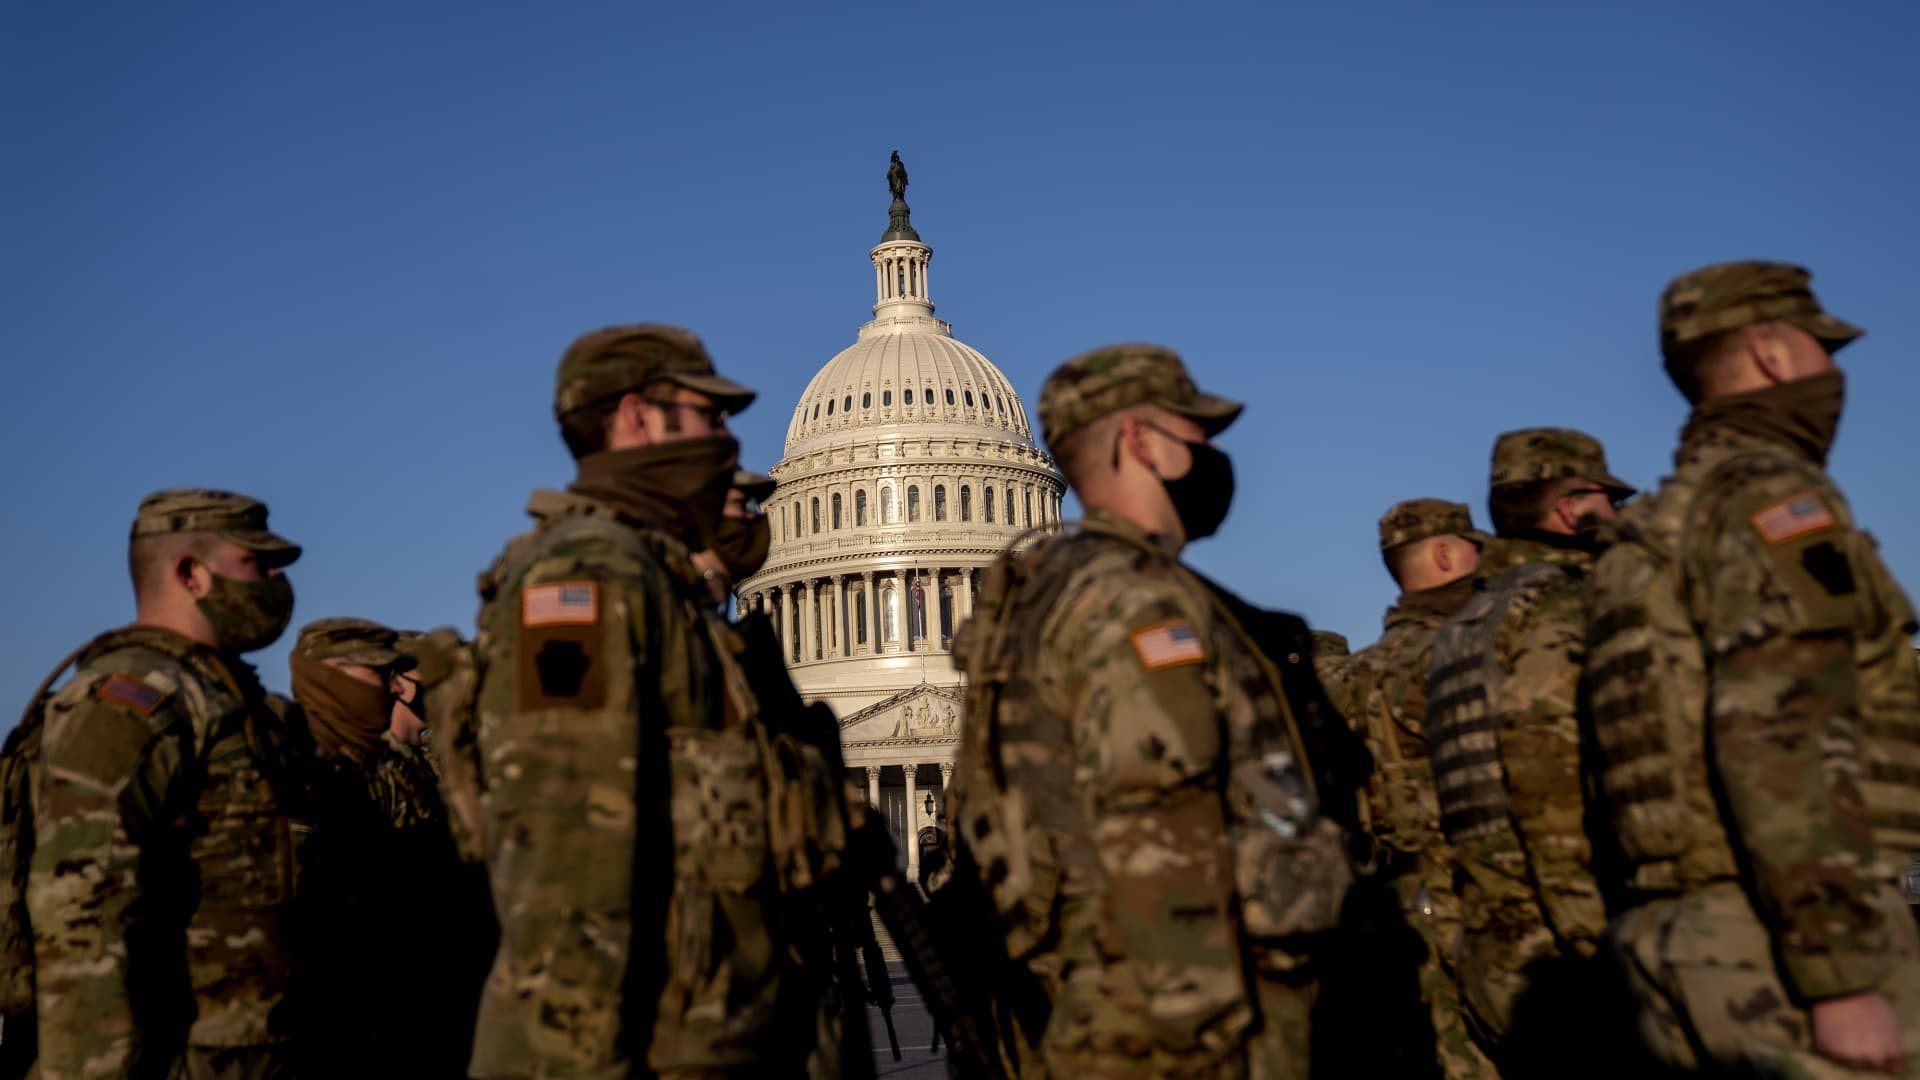 Members of the National Guard gather outside the U.S. Capitol in Washington, D.C., U.S., on Thursday, March 4, 2021.